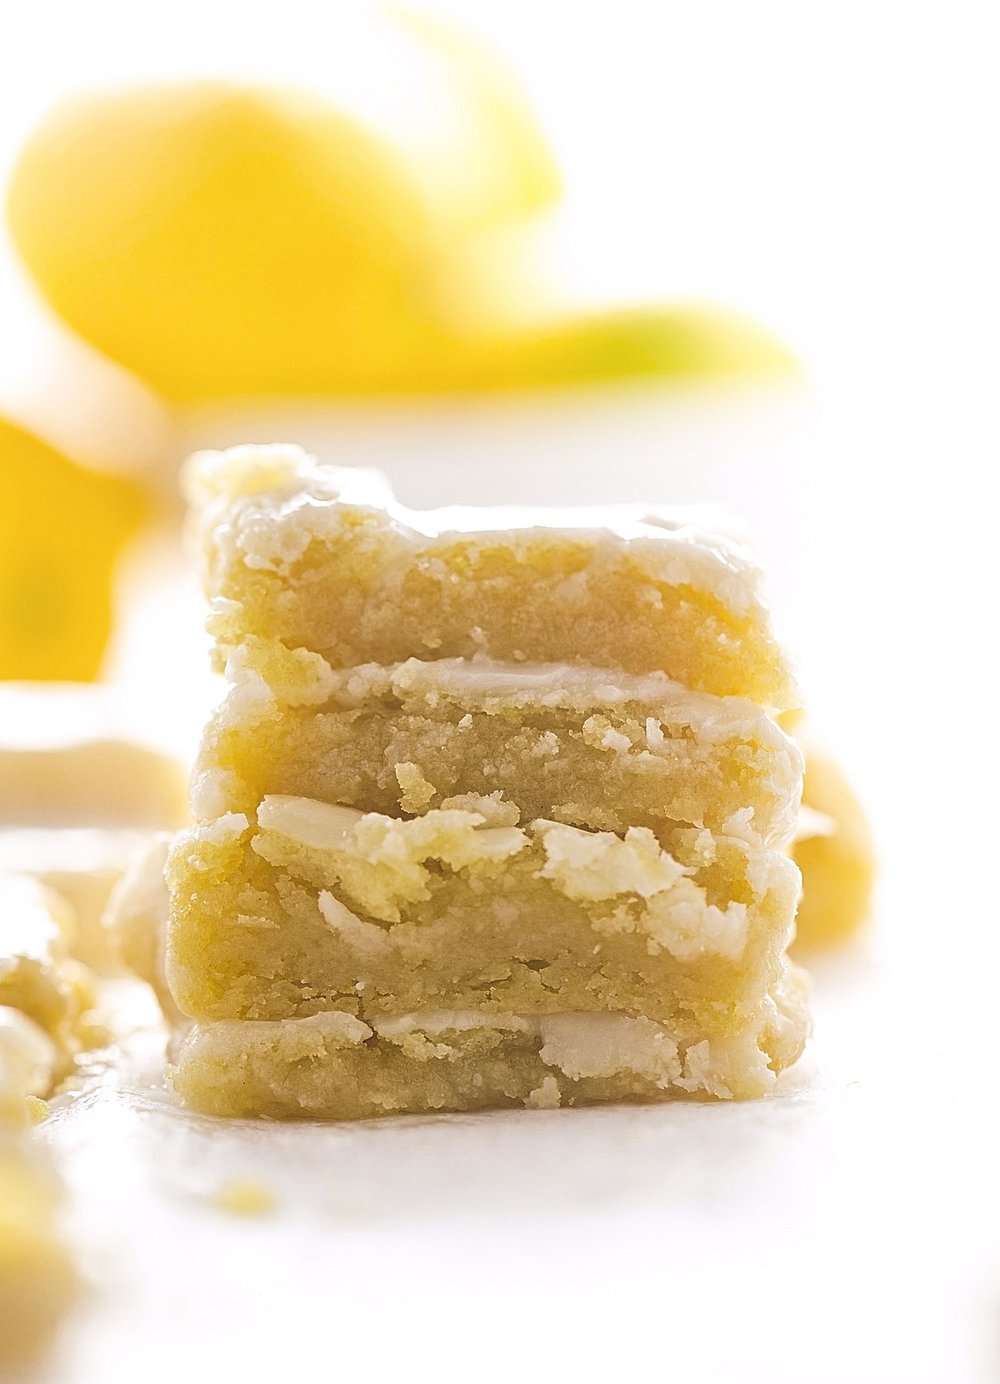 No-Butter Glazed Lemon Blondies: soft, gooey, rich lemon blondies, or lemonies. Made with coconut oil and a tangy lemon glaze. So easy!